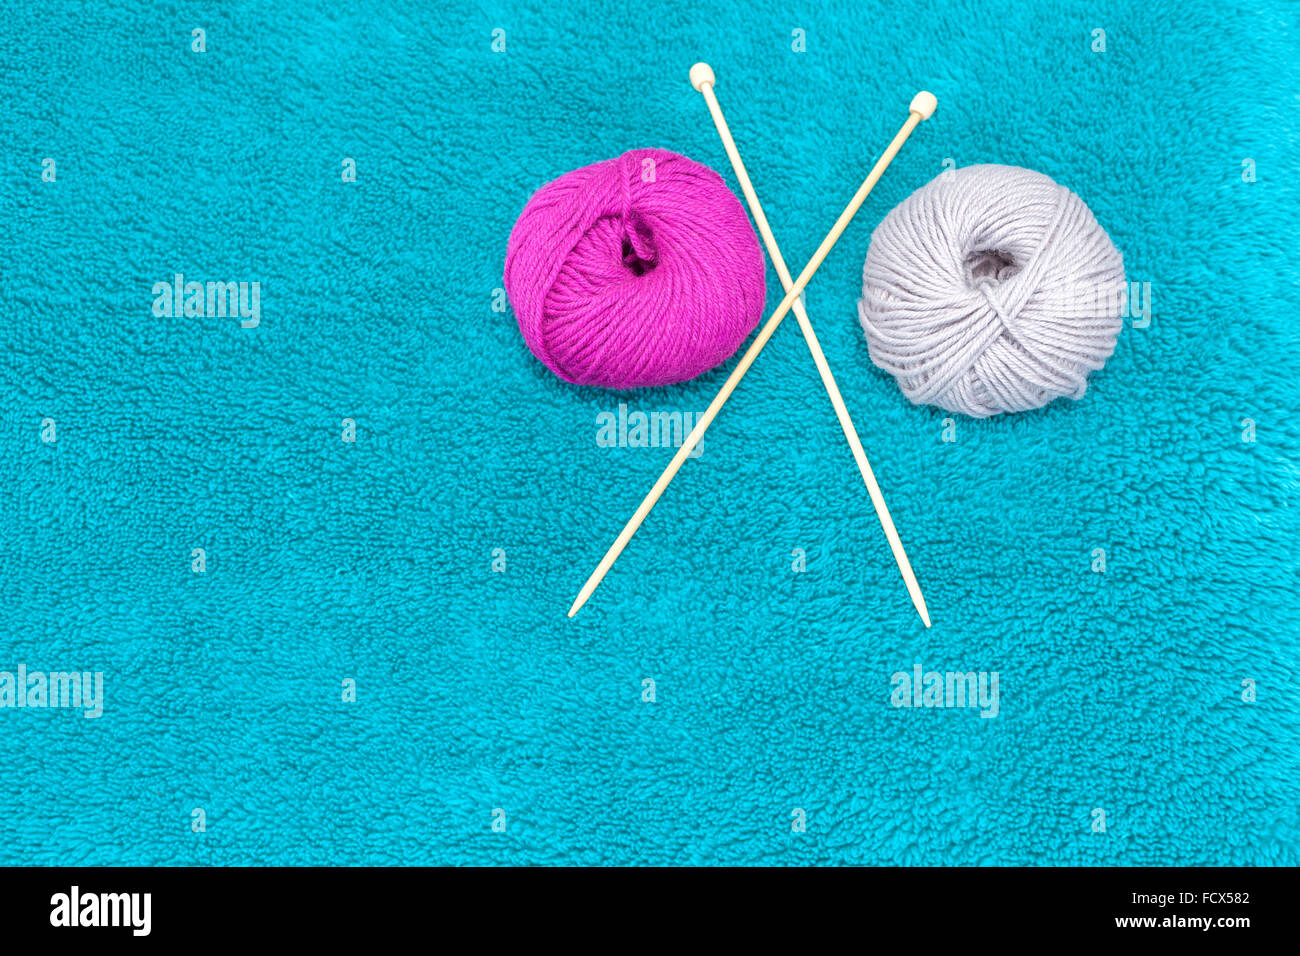 Wool yarns and knitting needles, space for text. - Stock Image